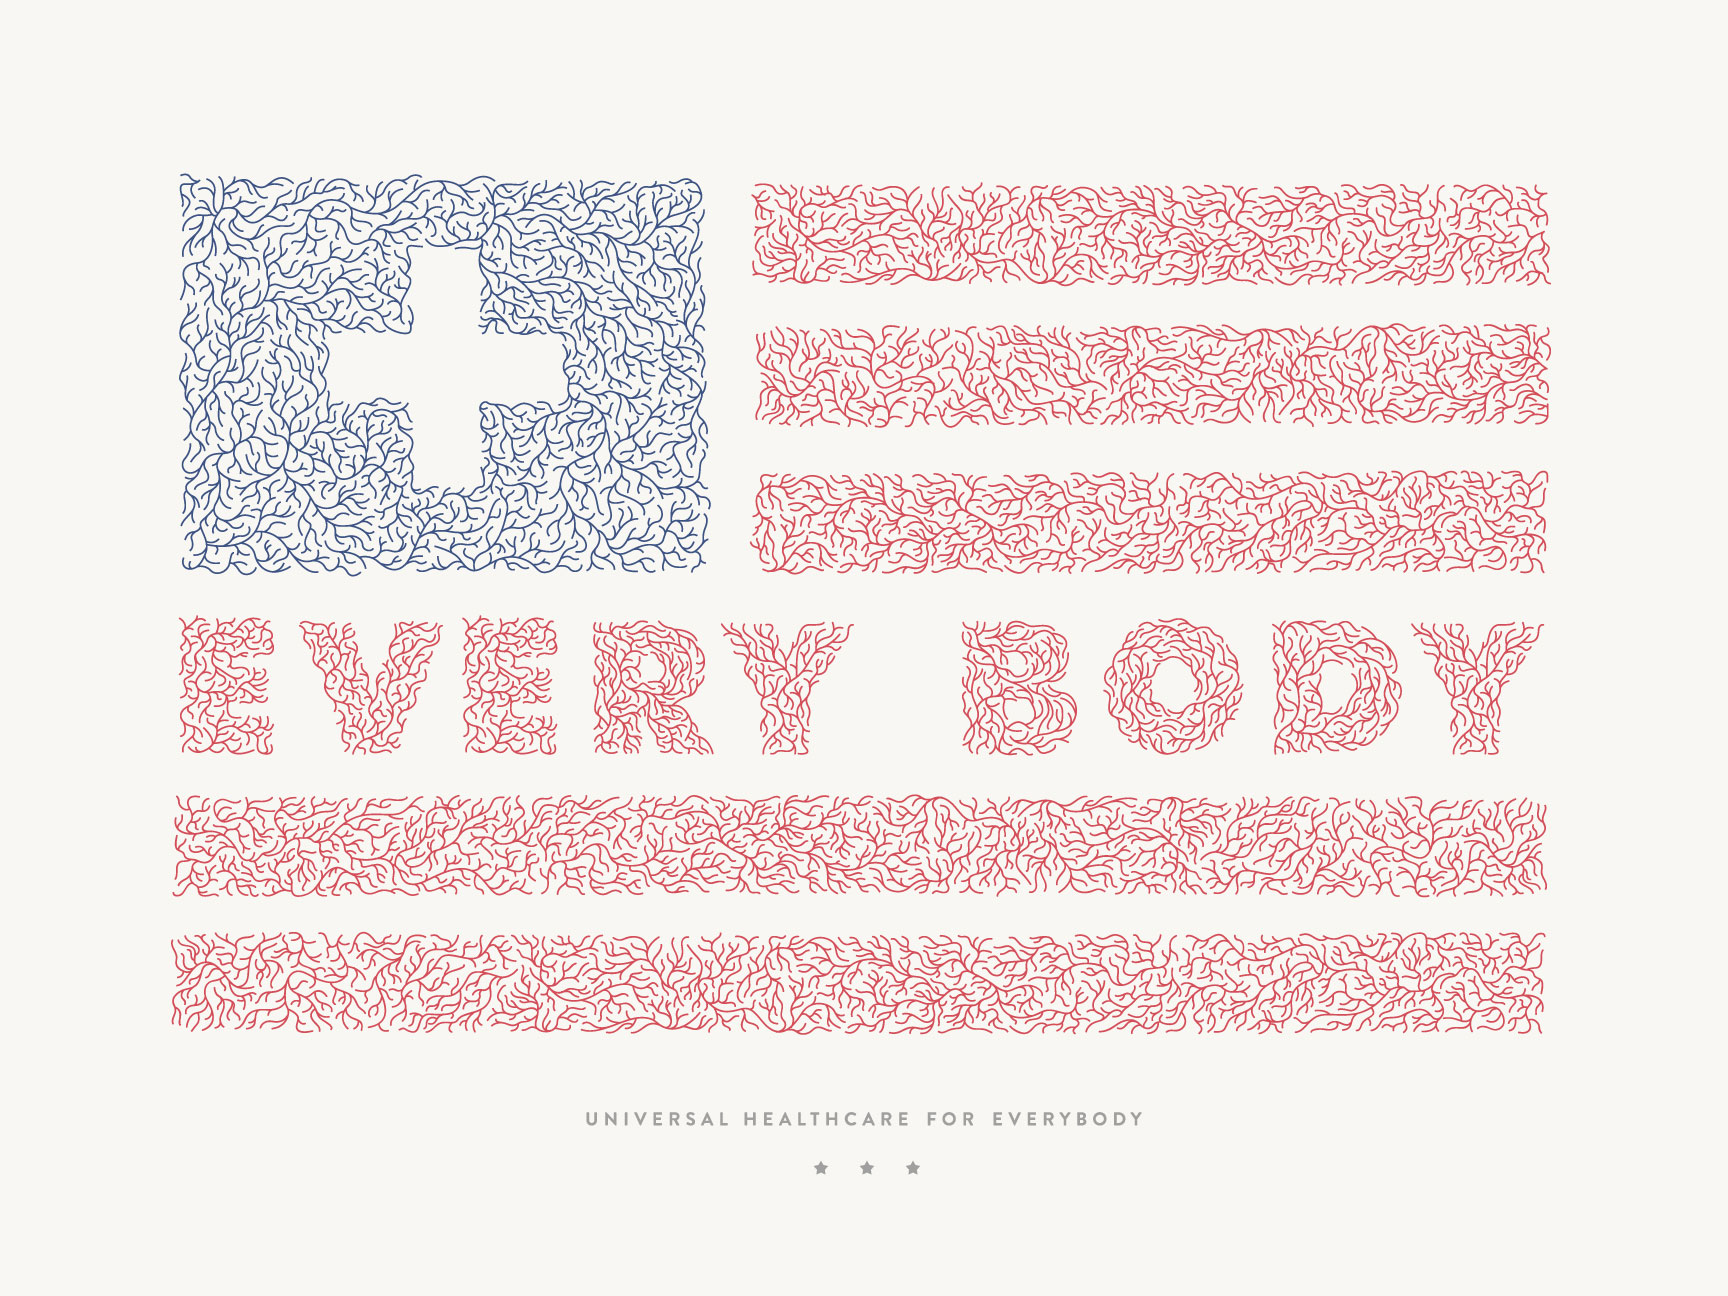 EVERY BODY: Justin Schafer